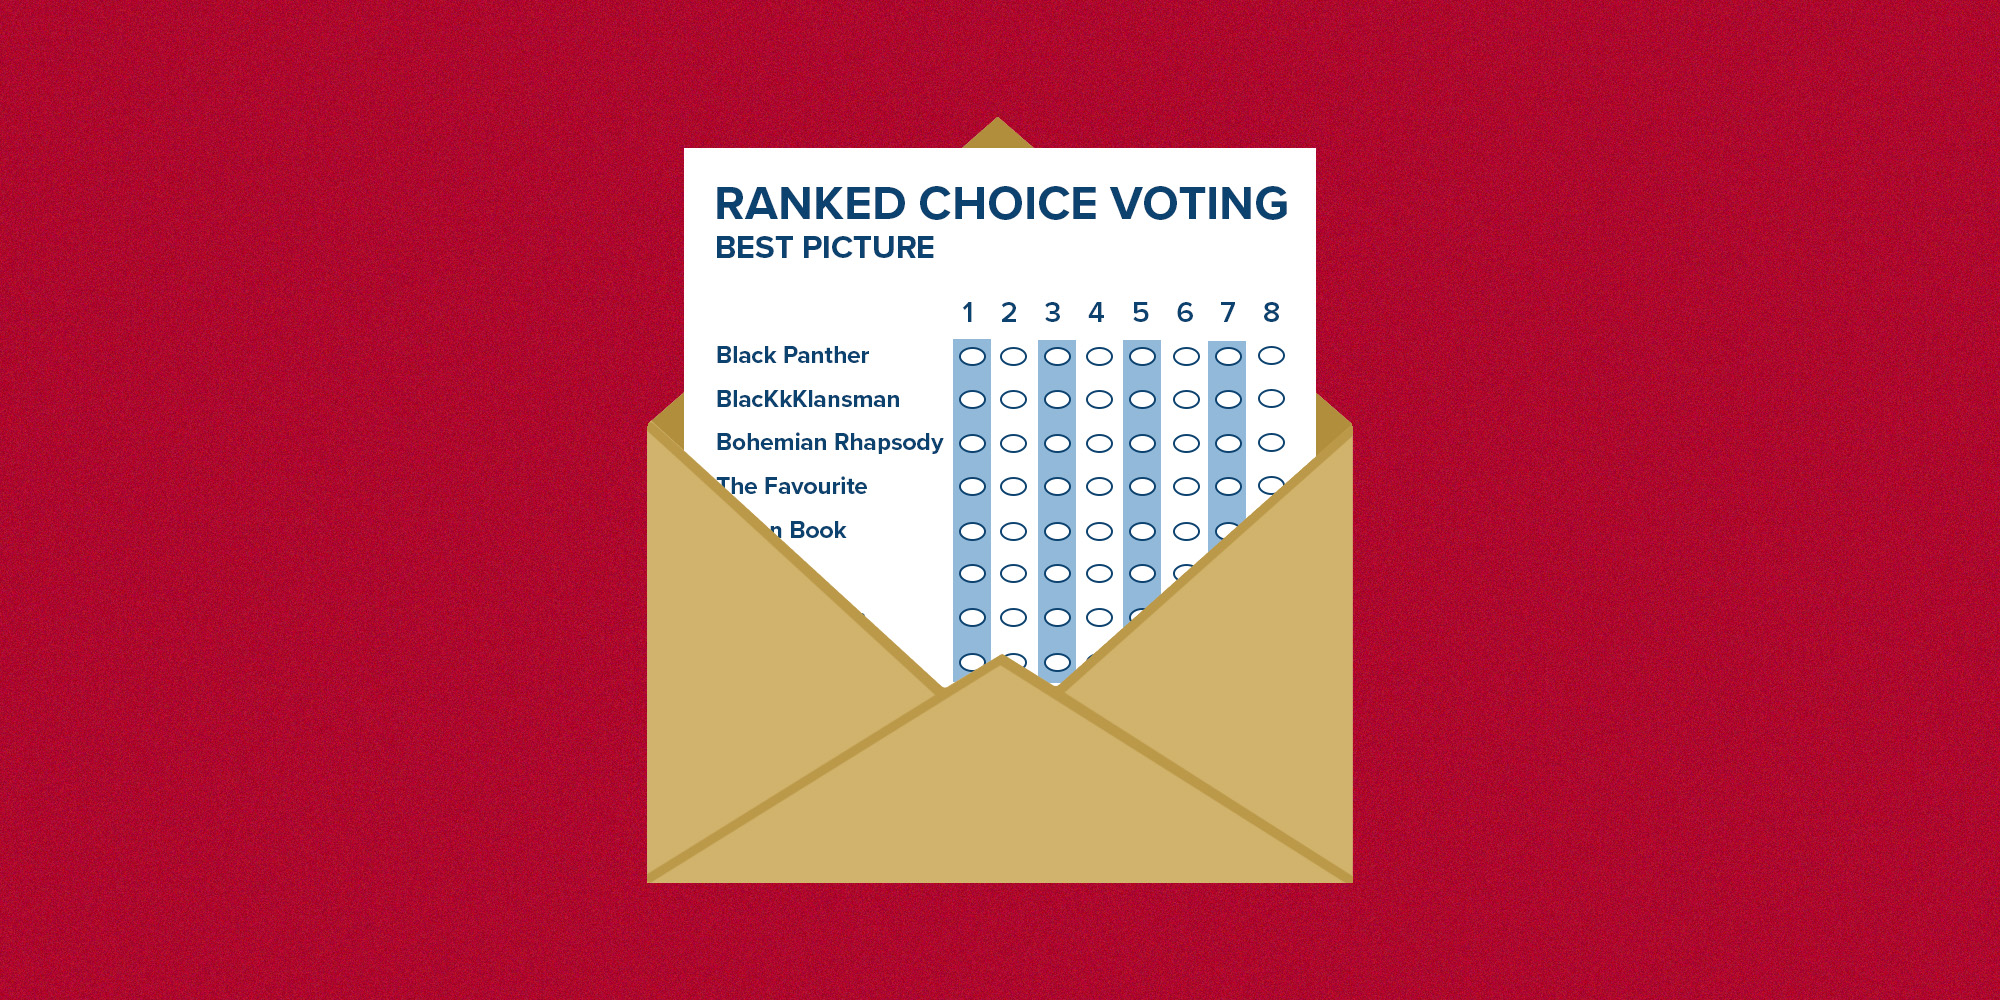 Roll out the red carpet for ranked choice voting at the Oscars